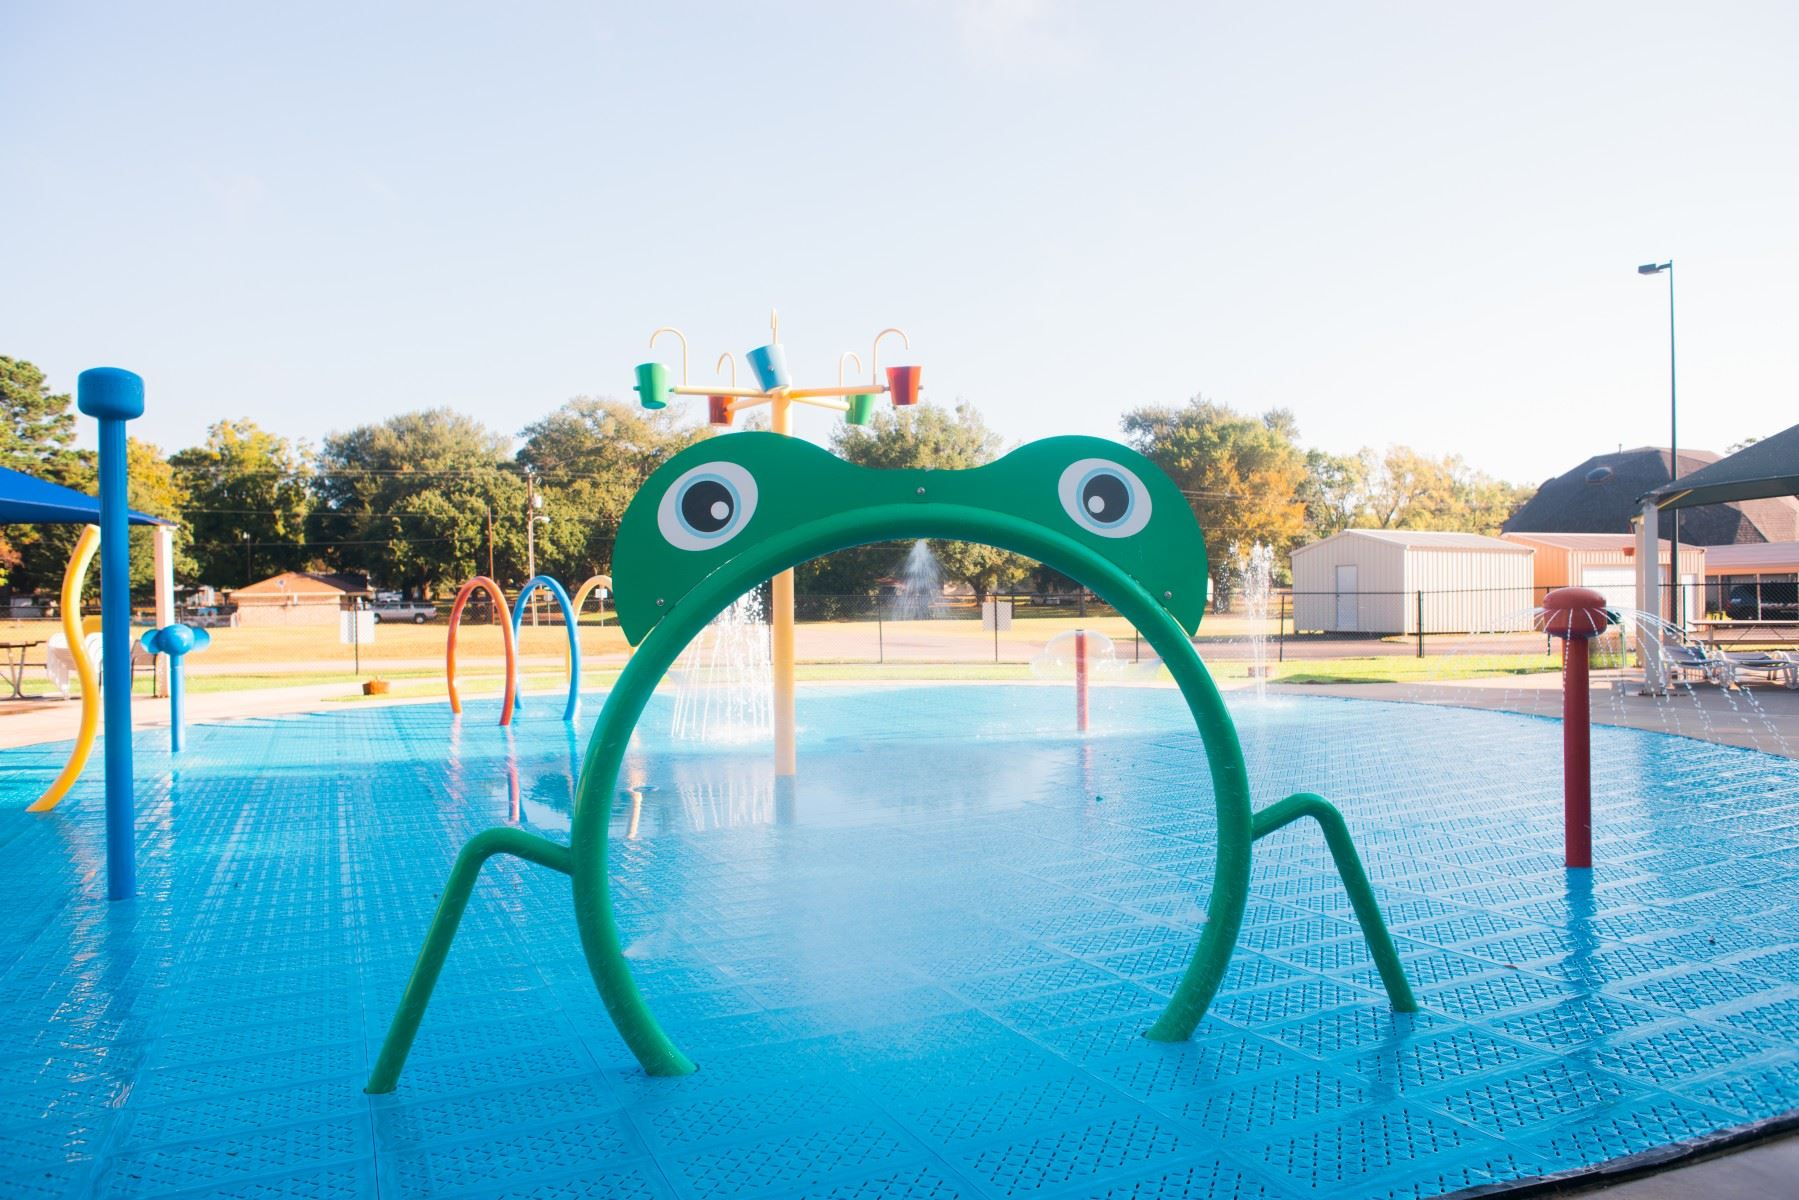 Frog Shaped Water Sprayer at a Splash Pad